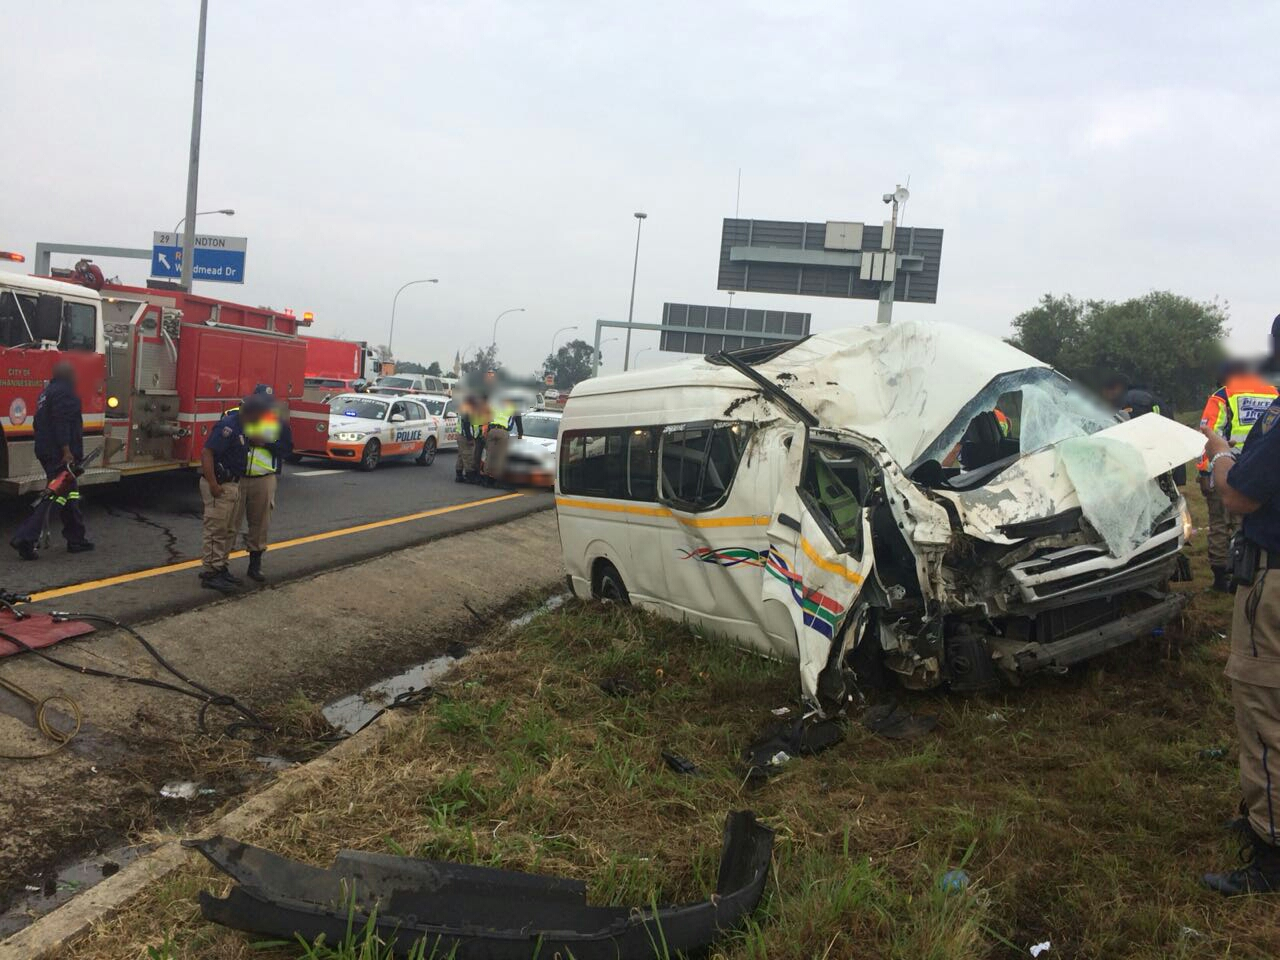 One person killed and fifteen others injured in a single vehicle